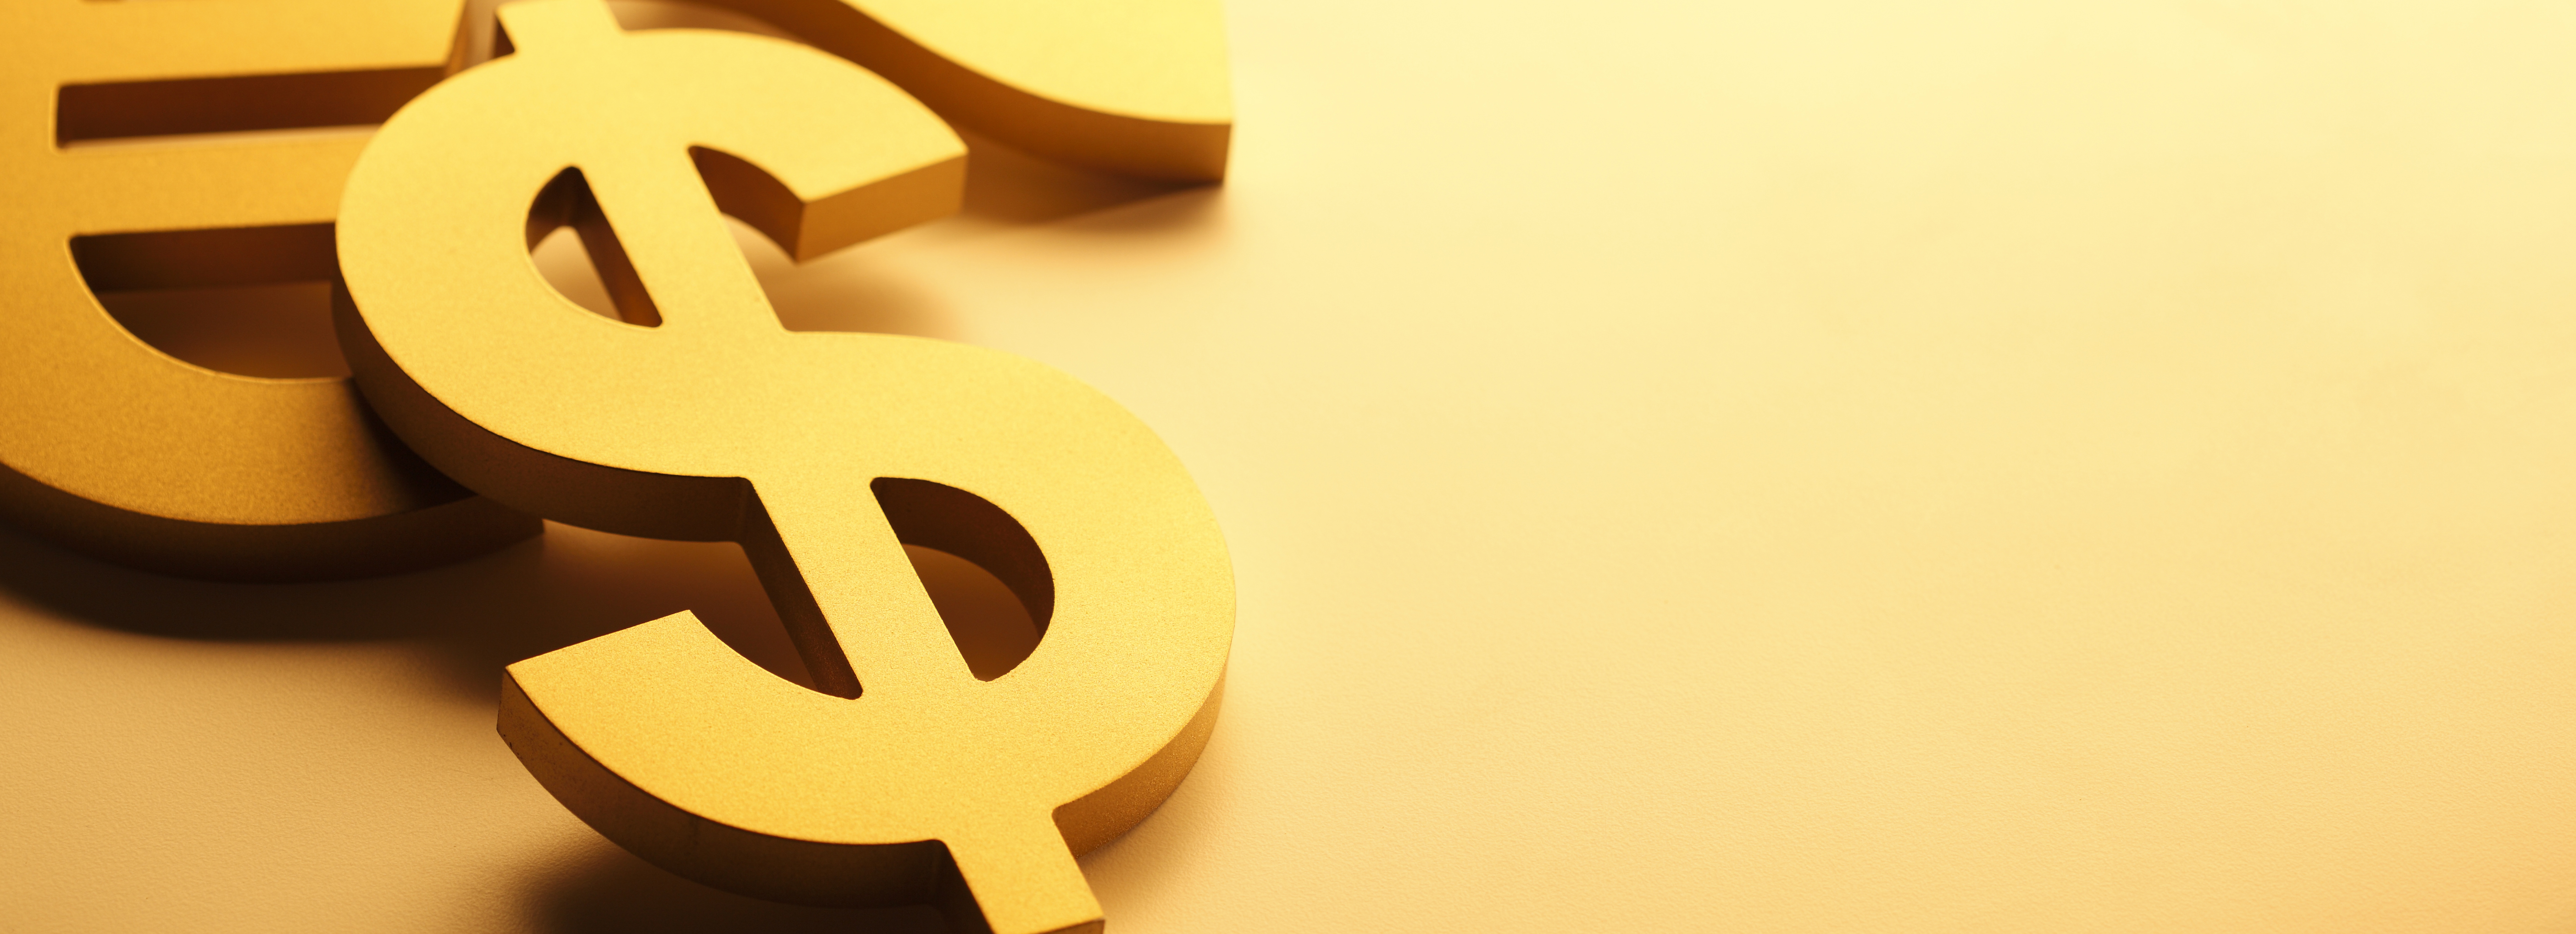 Dollar-Currency-symbol-Golden-800x290